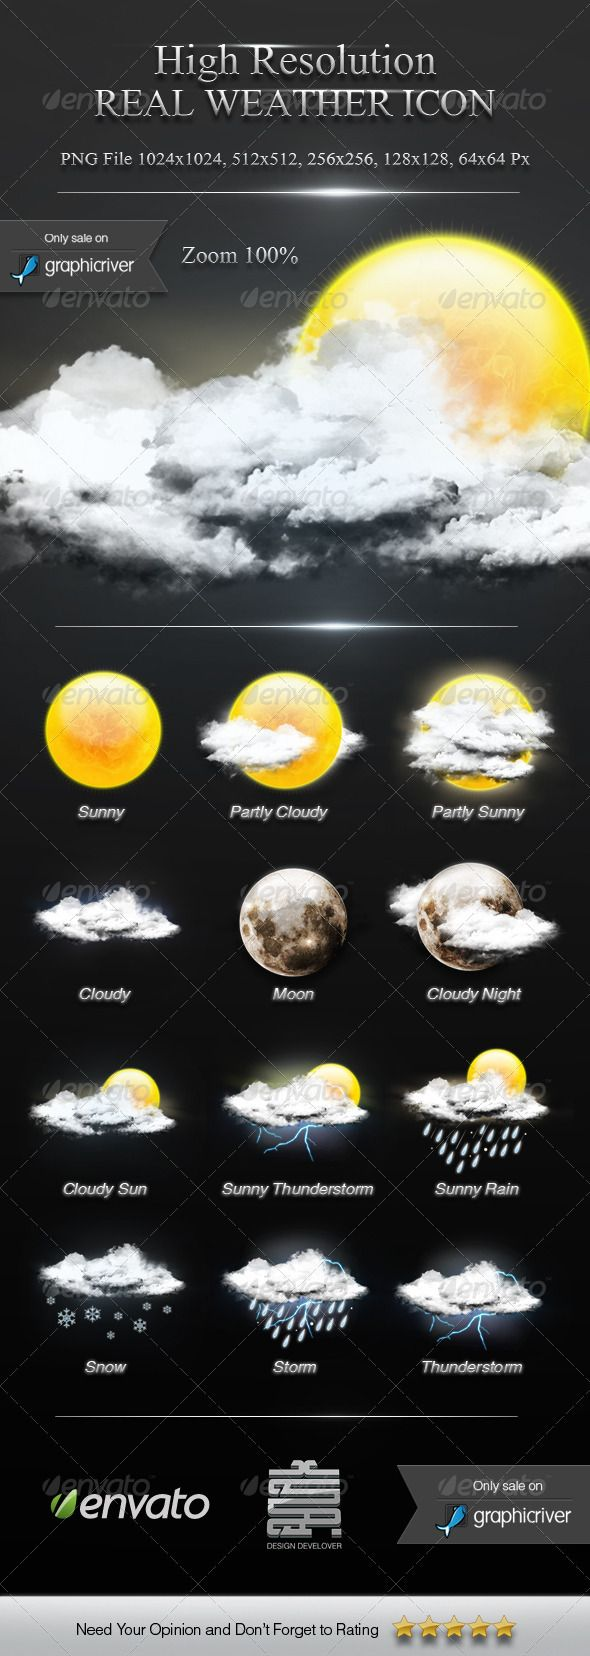 High Resolution Weather Icon — Photoshop PSD #awesome #weather forecast • Available here → https://graphicriver.net/item/high-resolution-weather-icon/2678649?ref=pxcr